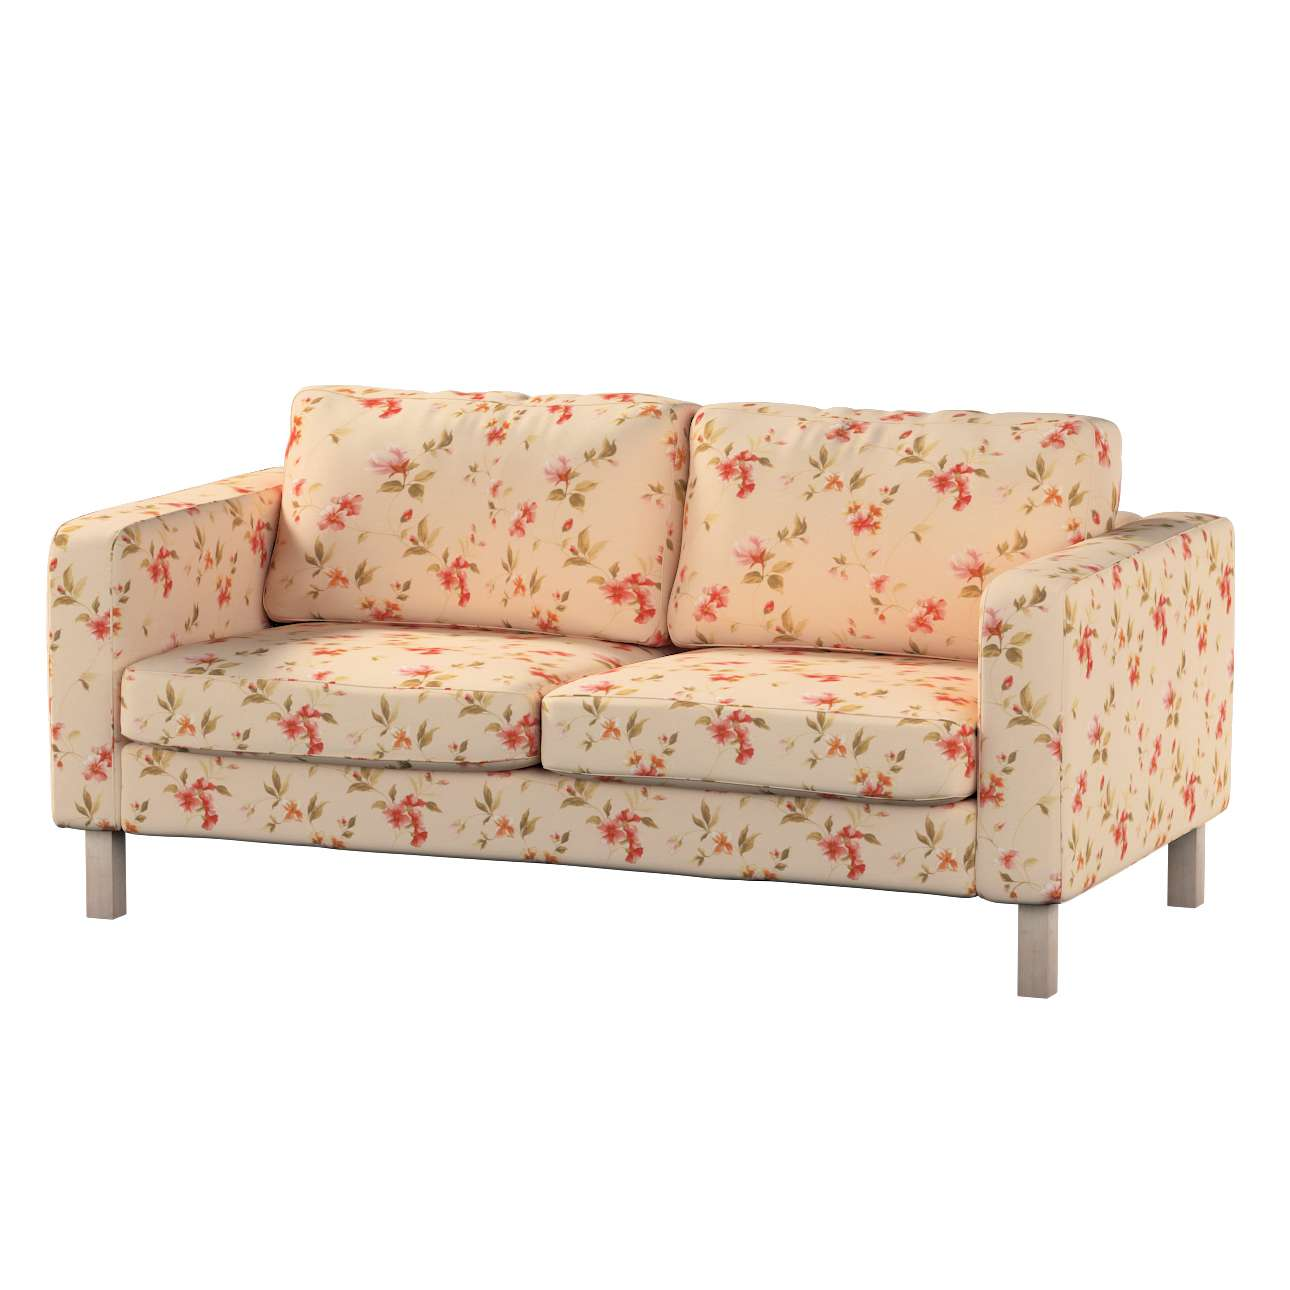 Karlstad 2-seater sofa cover in collection Londres, fabric: 124-05